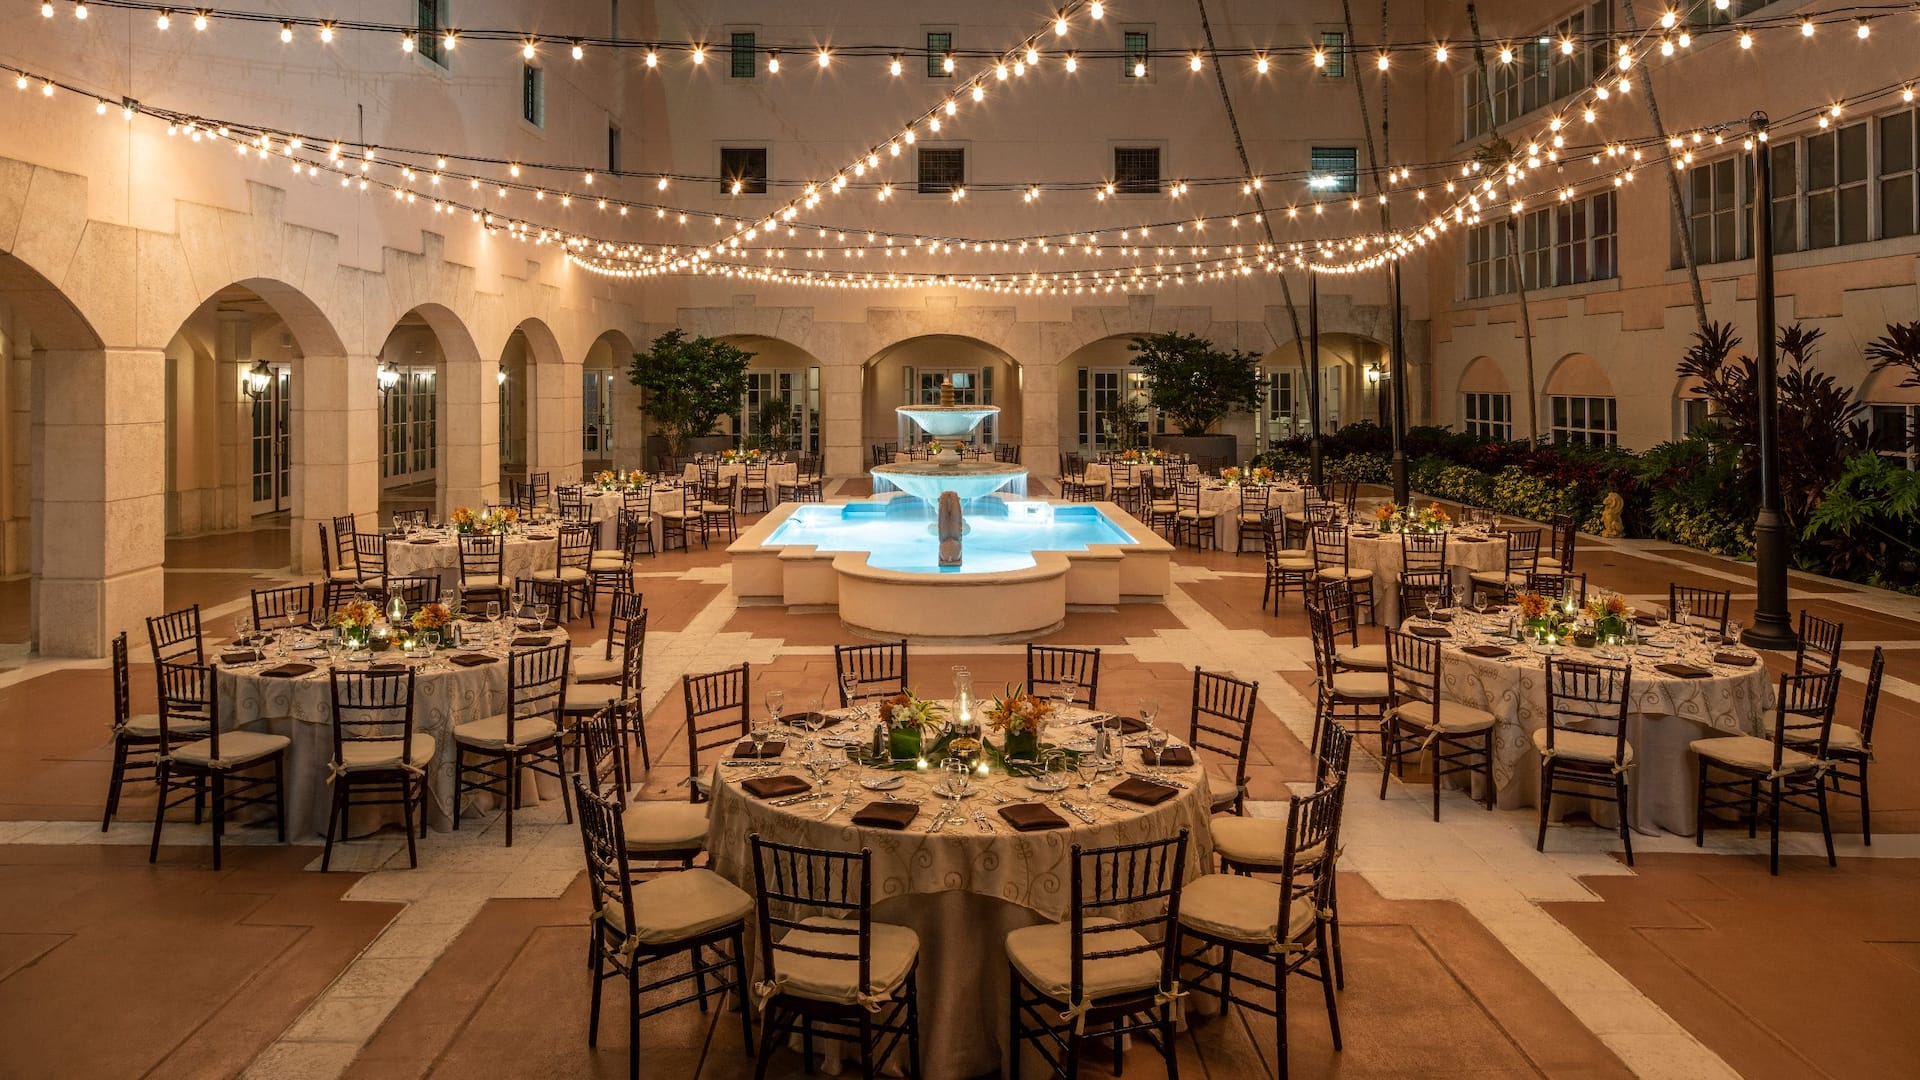 Hyatt Regency Coral Gables Courtyard Banquet Night